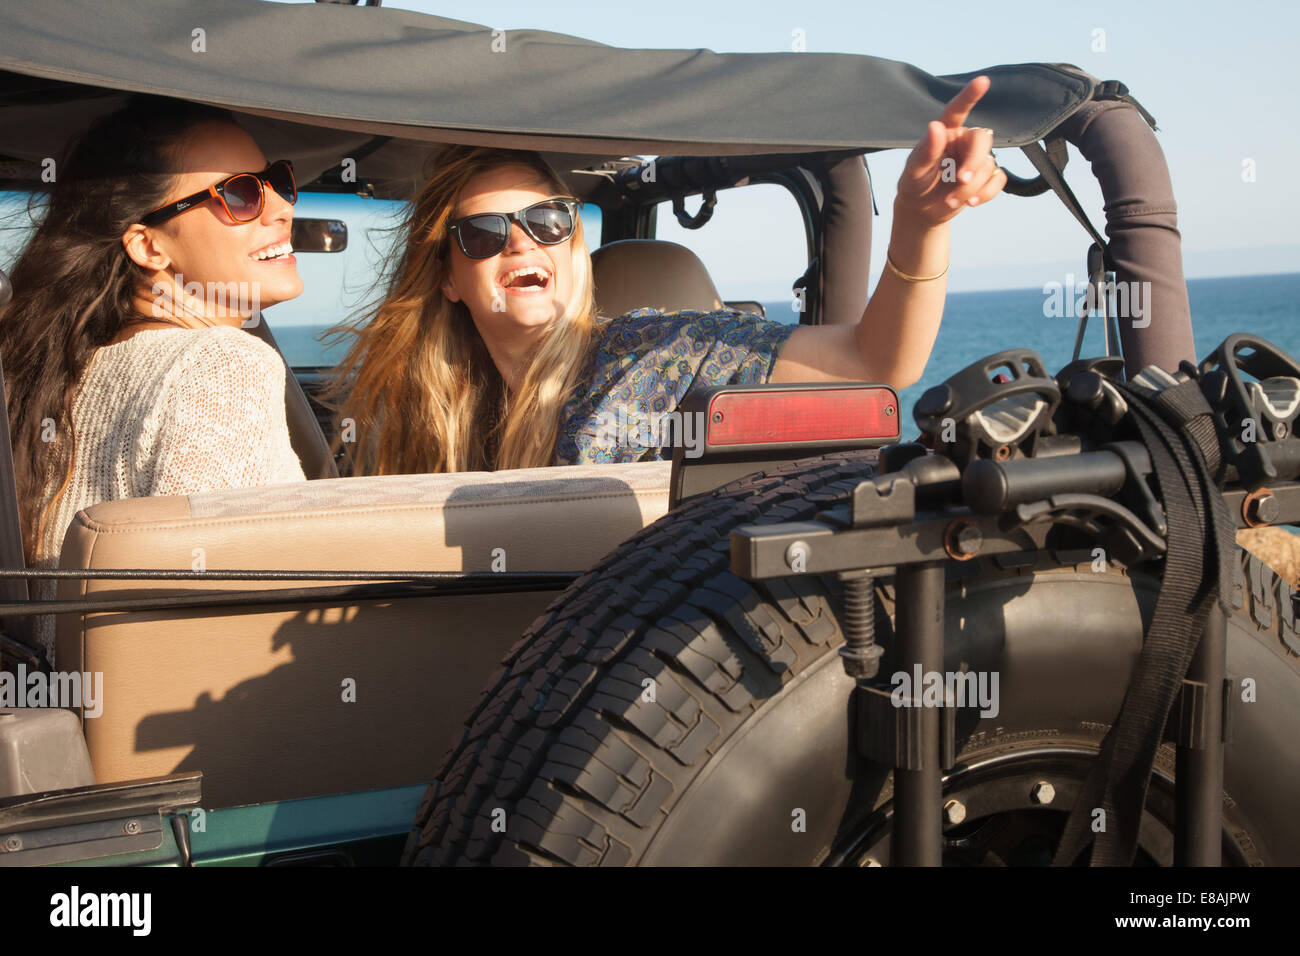 Two young women looking up from jeep at coast, Malibu, California, USA - Stock Image